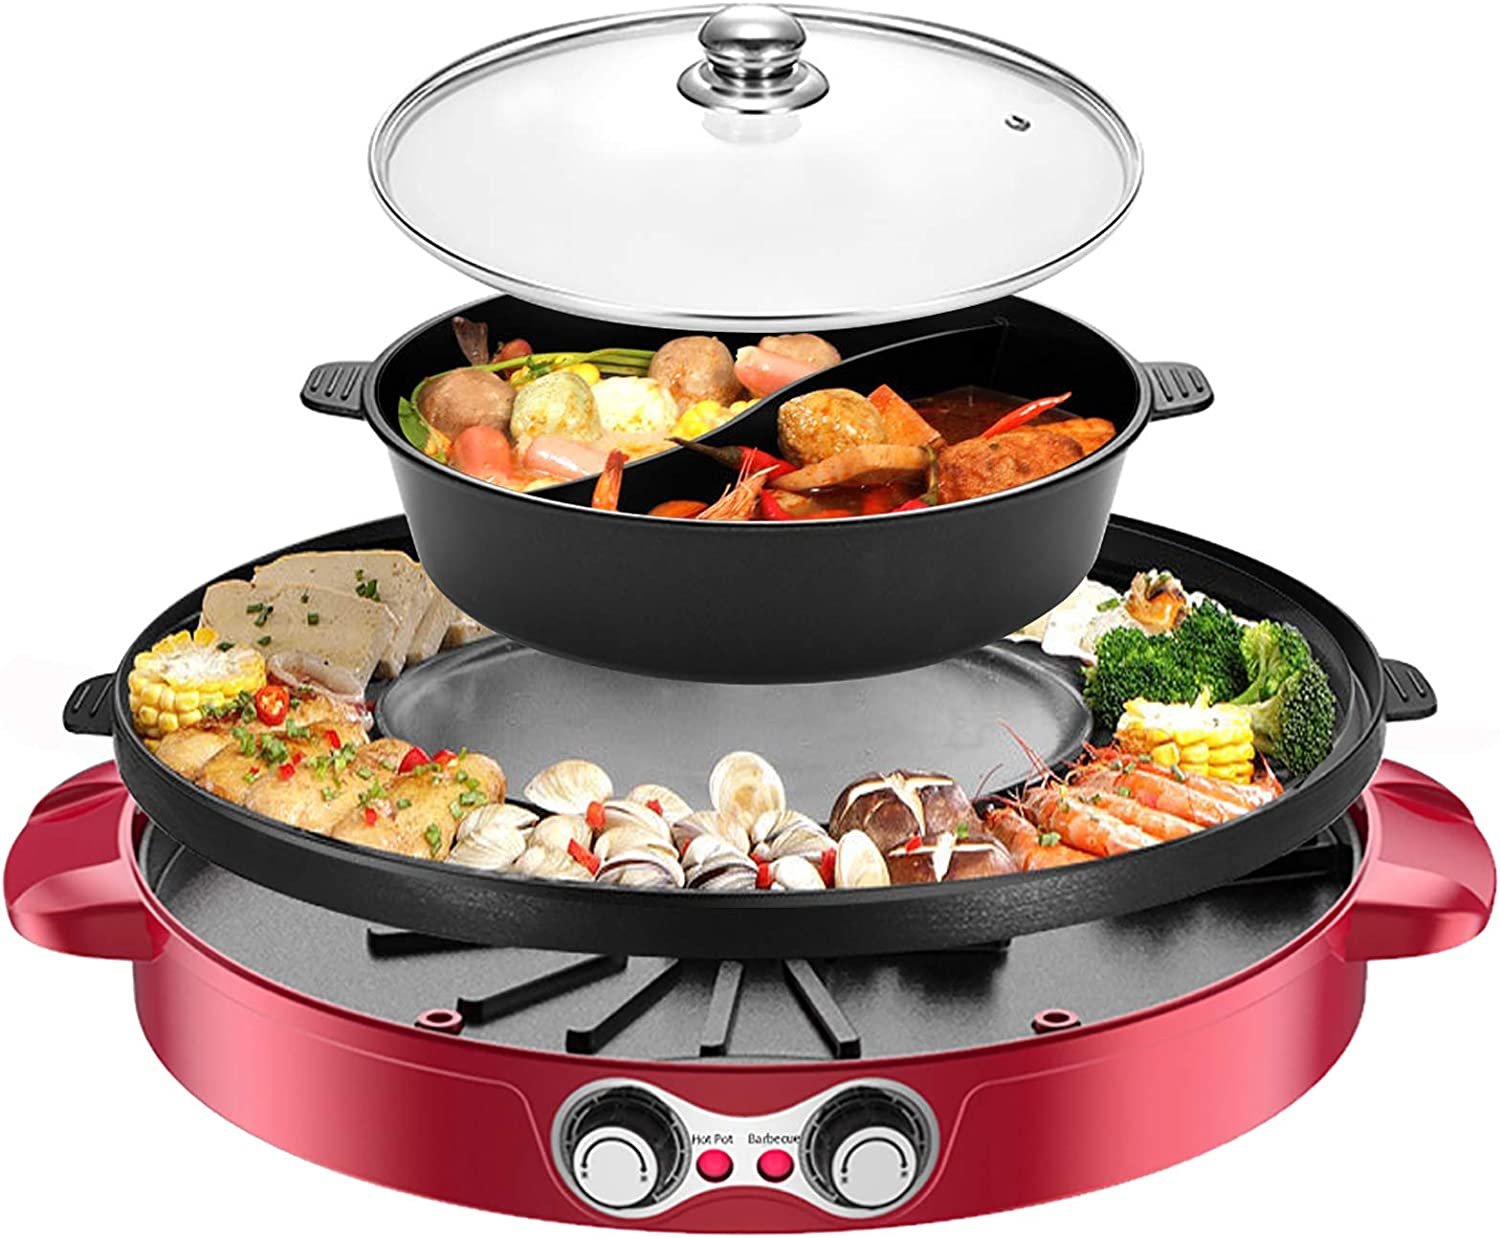 2200W Electric Grill and Hot Pot with Divider, 110V 2 in 1 Detachable Easy to Clean BBQ & Shabu with Independent Temperature Control for 2-8 People Family Gathering Friend Meeting Party